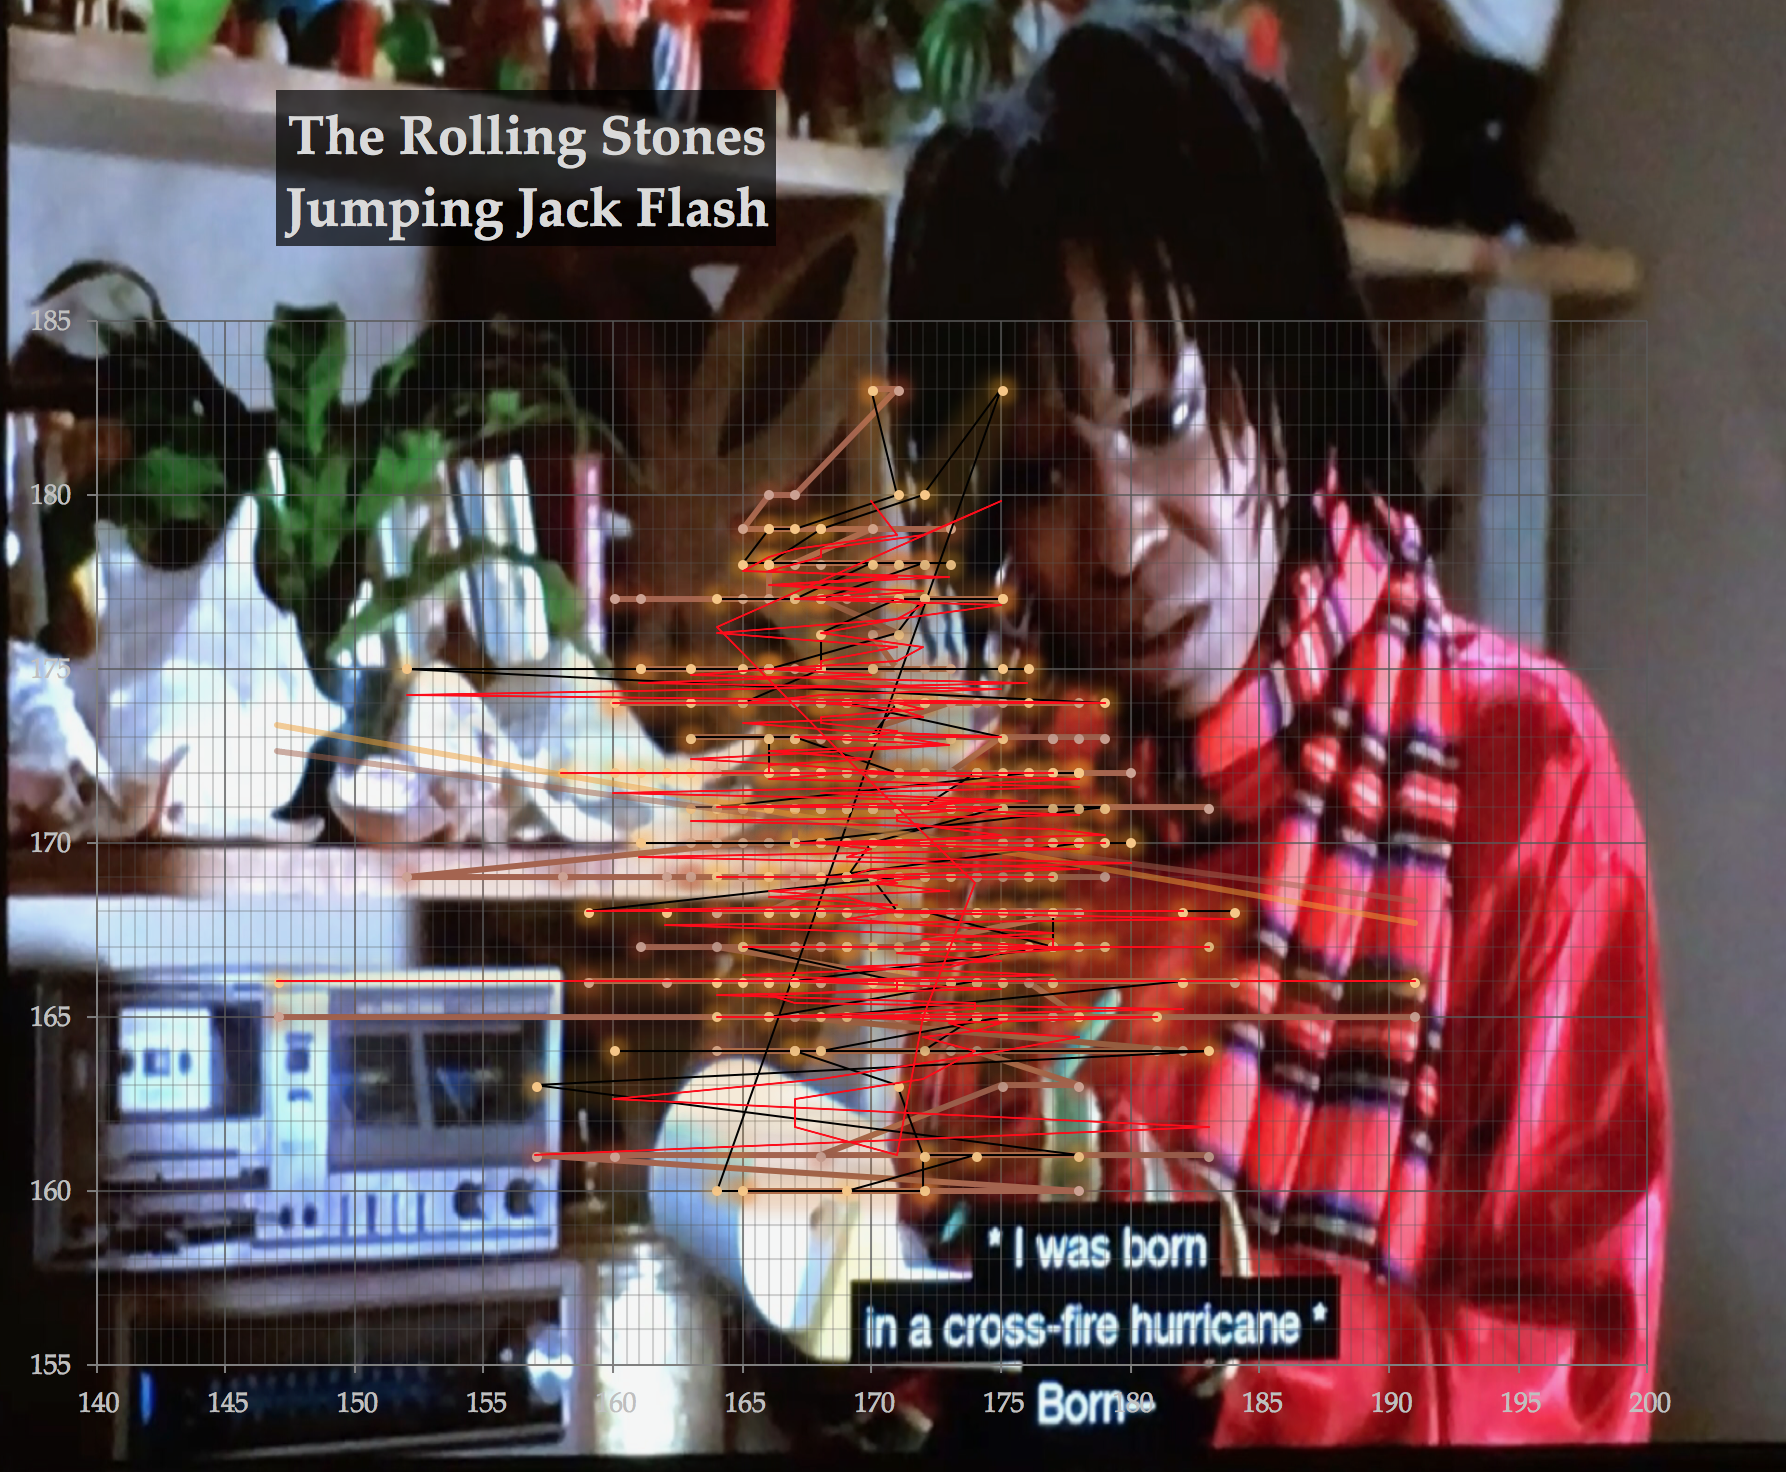 Jumping-Jack-Flash-Rolling-Stones-tempo-map-feat-Whoopi-Goldberg